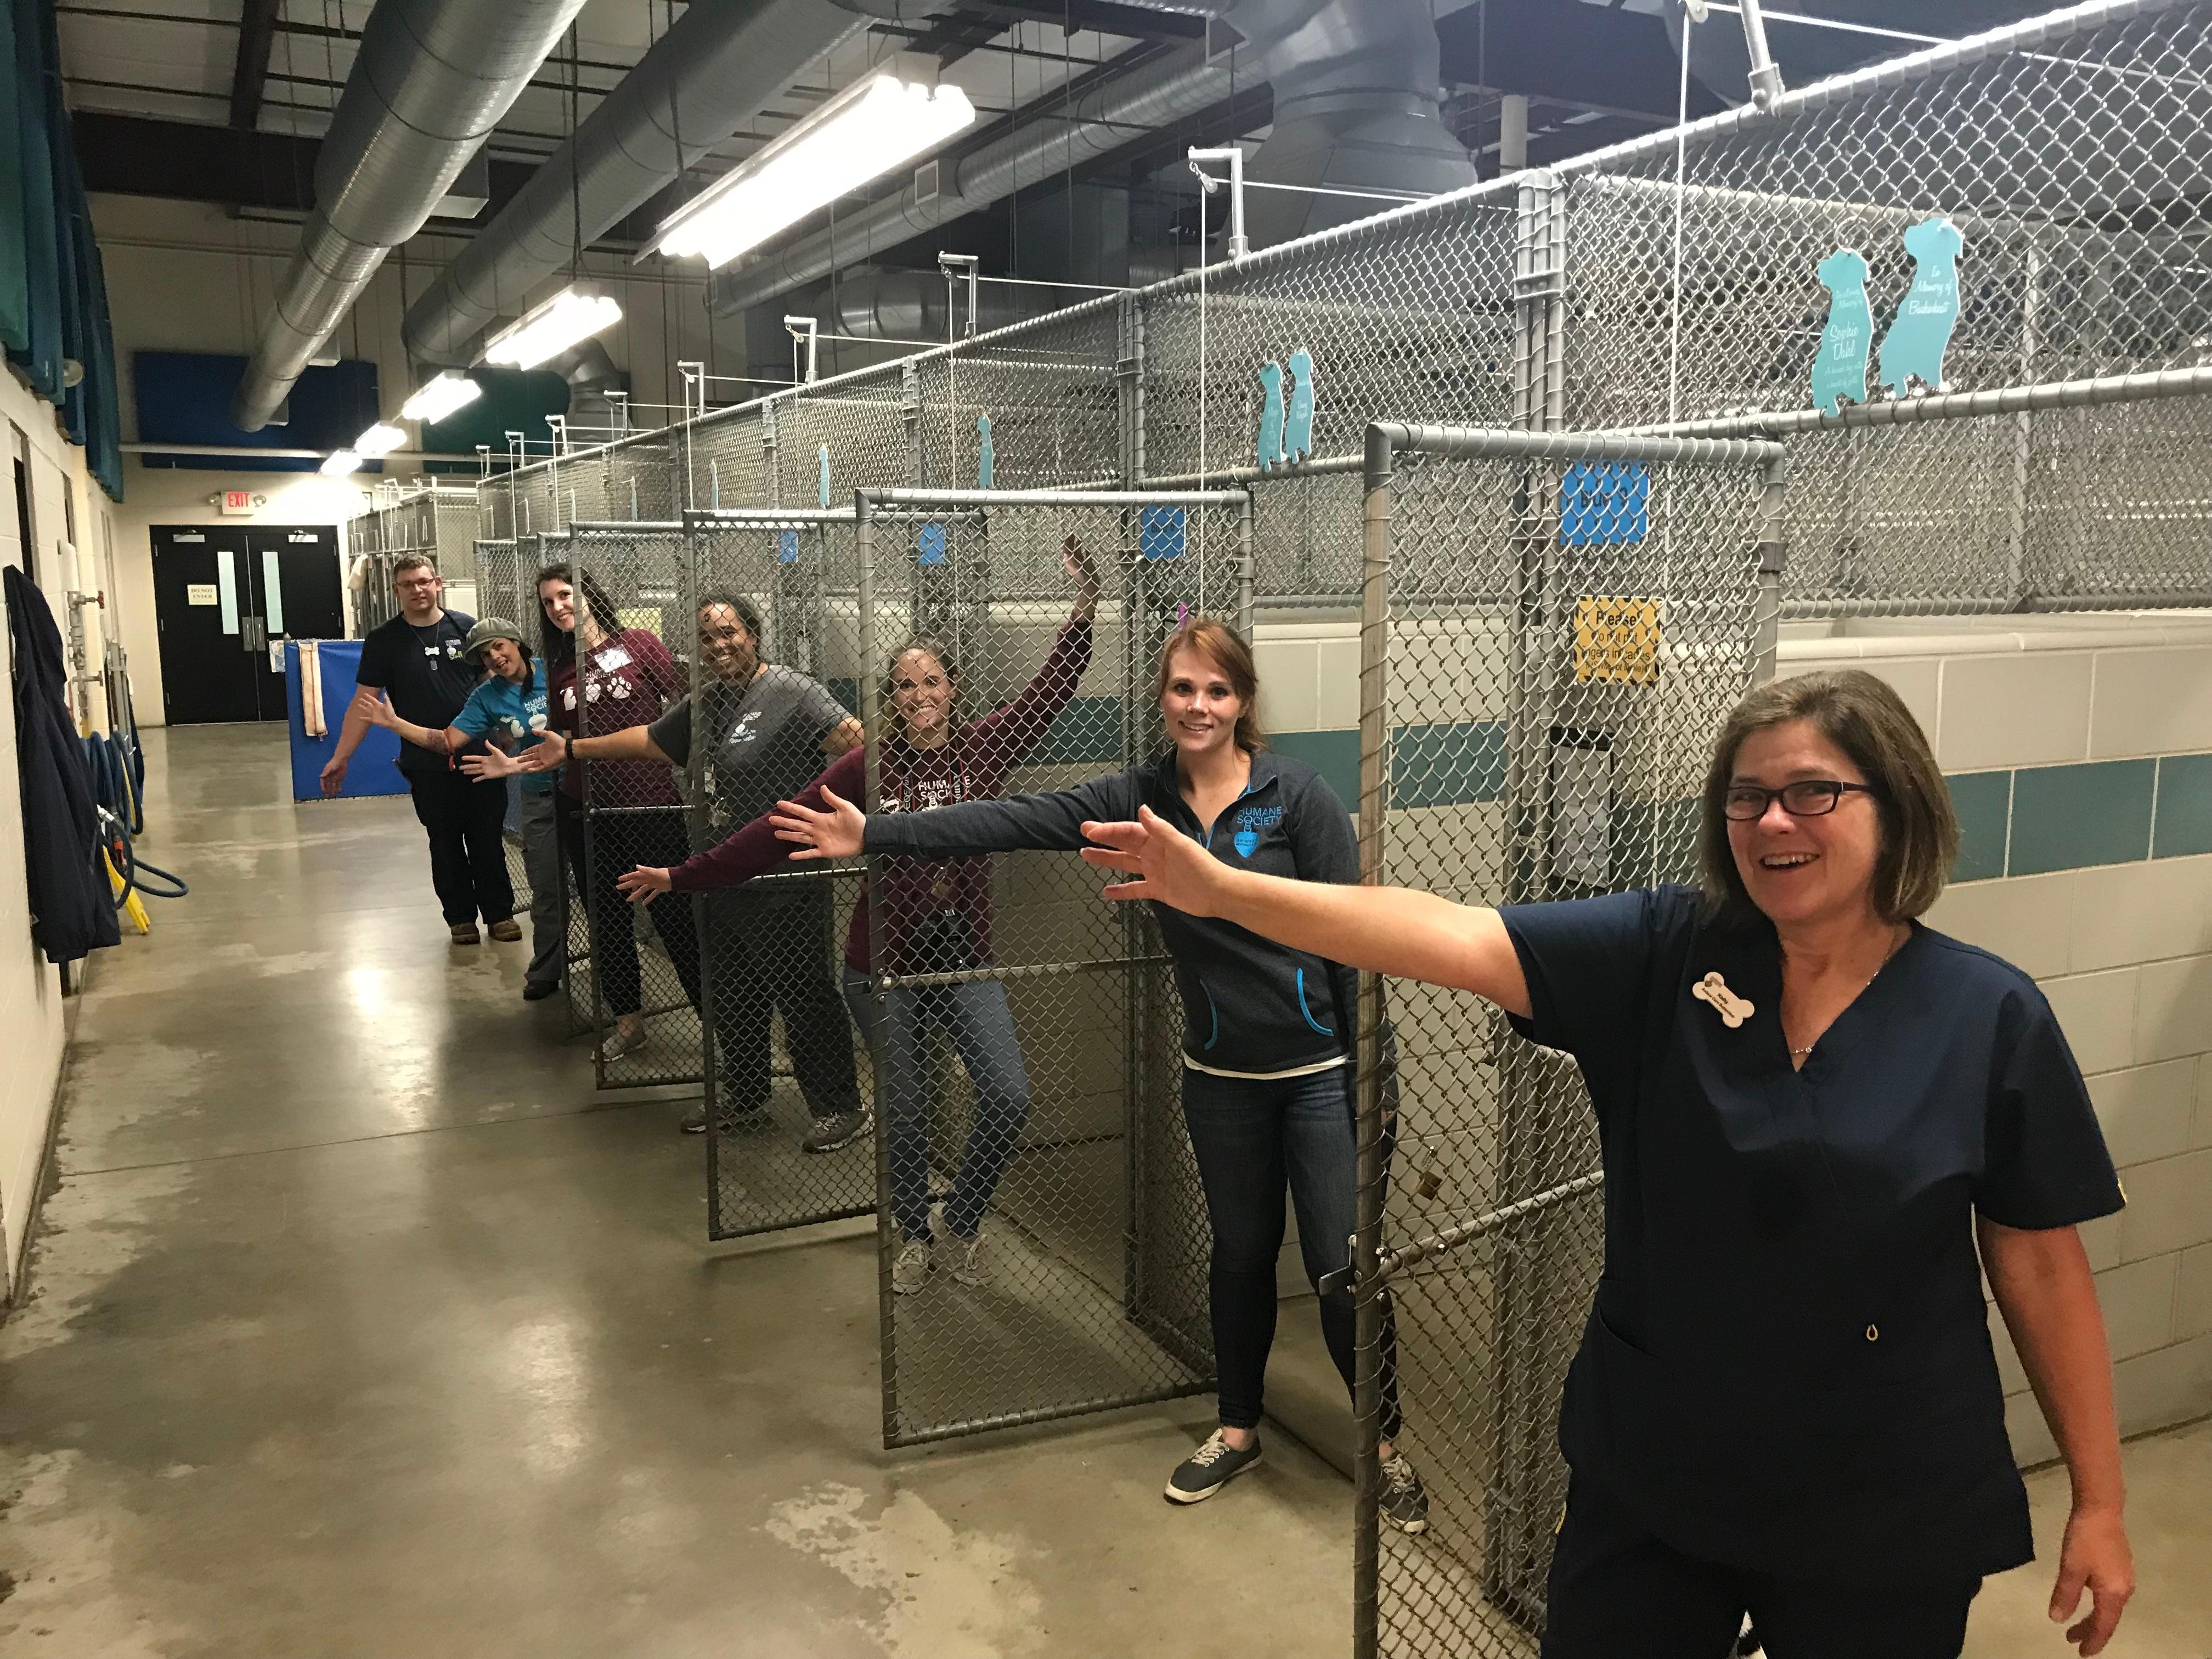 More than 2,000 pets found their forever home during the Empty the Shelters event.